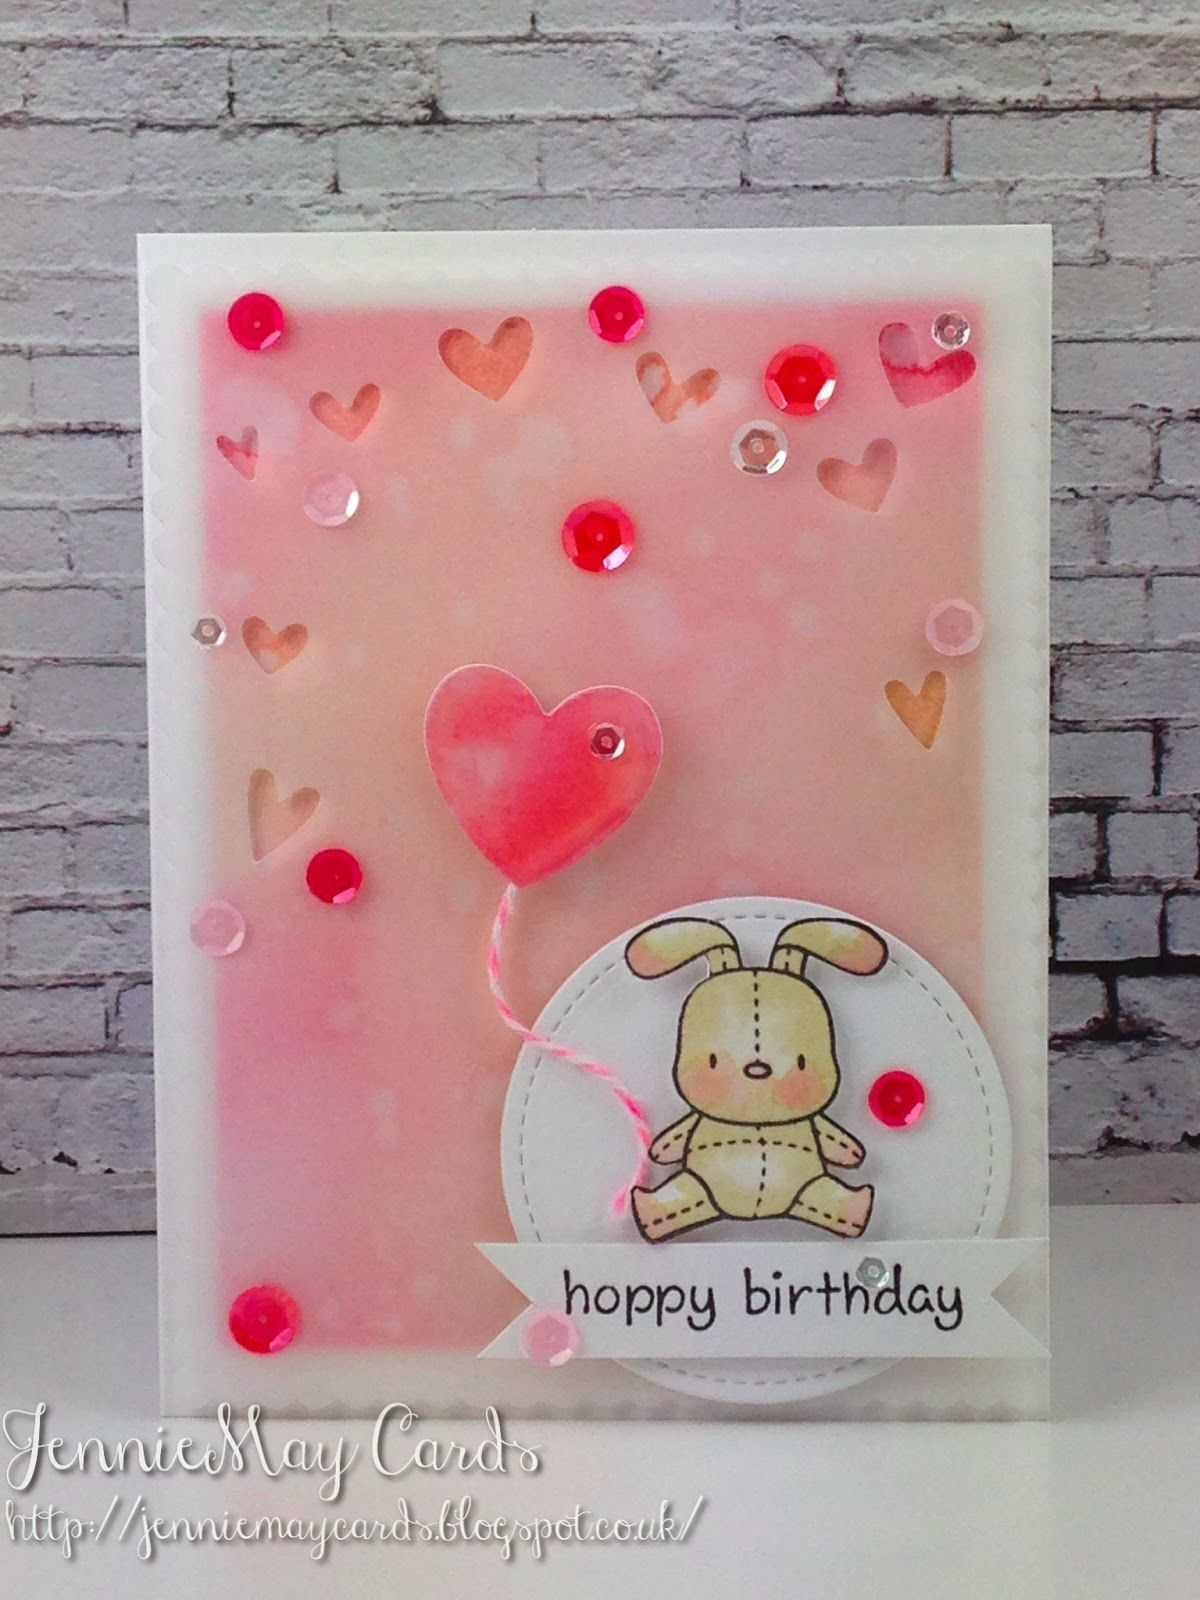 JennieMay Cards: Hoppy Birthday Card